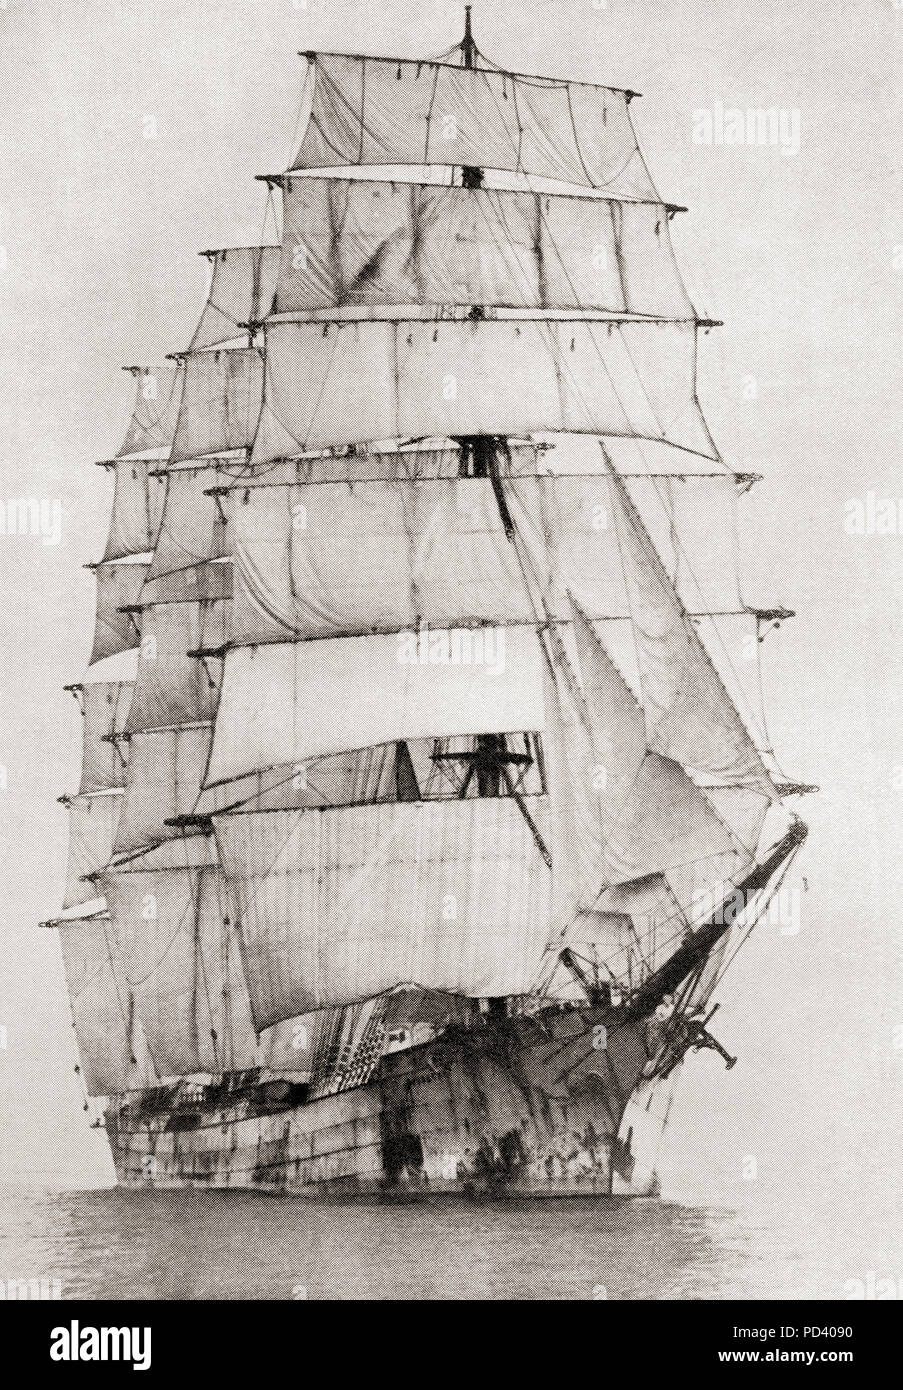 The Hougomont, a four-masted steel barque, setting sail from Falmouth, England.  From The Book of Ships, published c.1920. - Stock Image